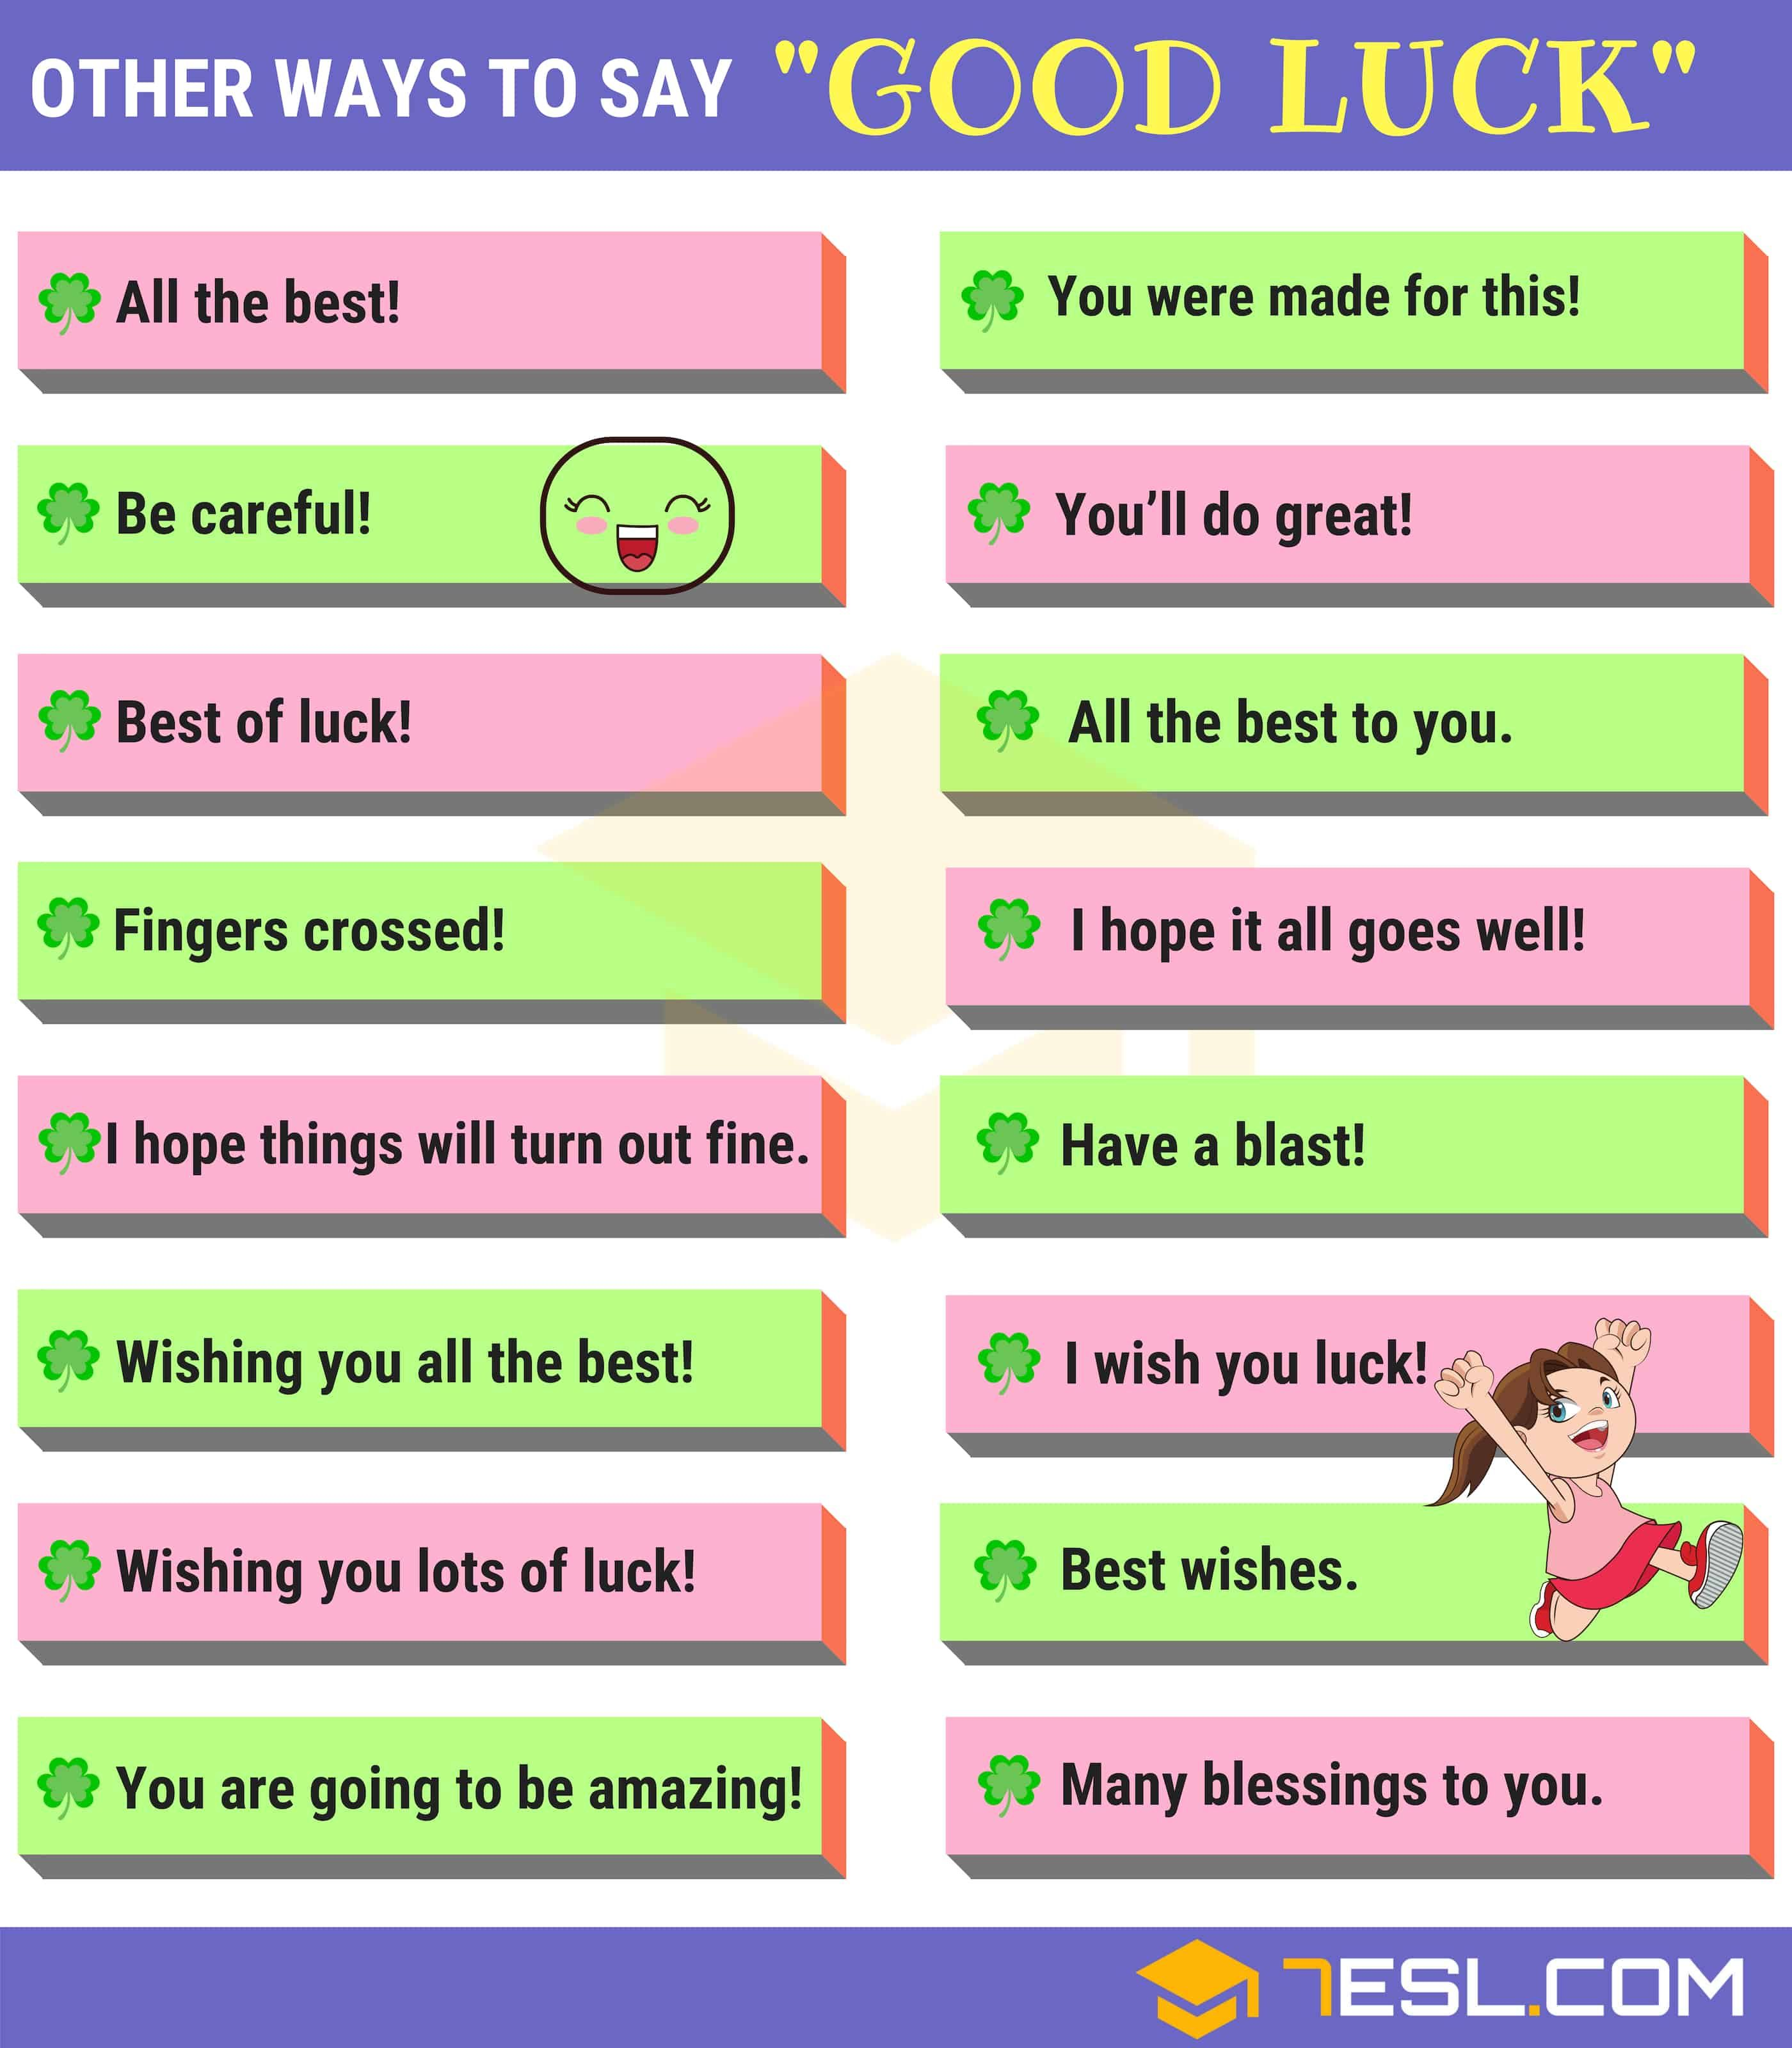 50 Ways To Say Good Luck In Writing Speaking Good Luck Synonyms 7esl Good Luck Quotes Writing Words Learn English Words